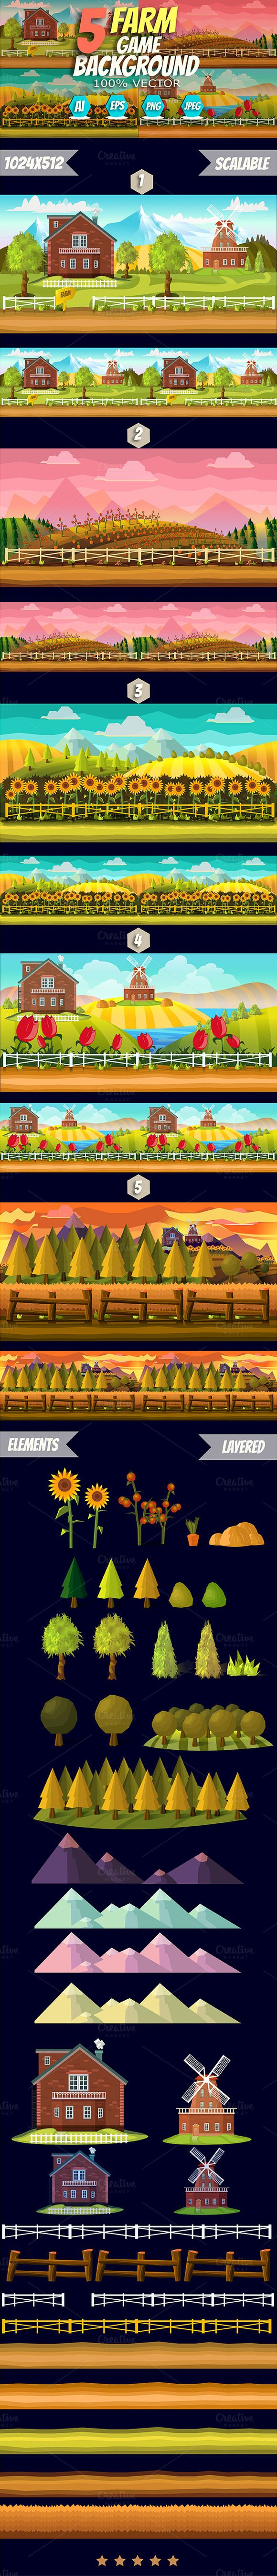 5 Level Farm Game Backgrounds by VitaliyVill on @creativemarket